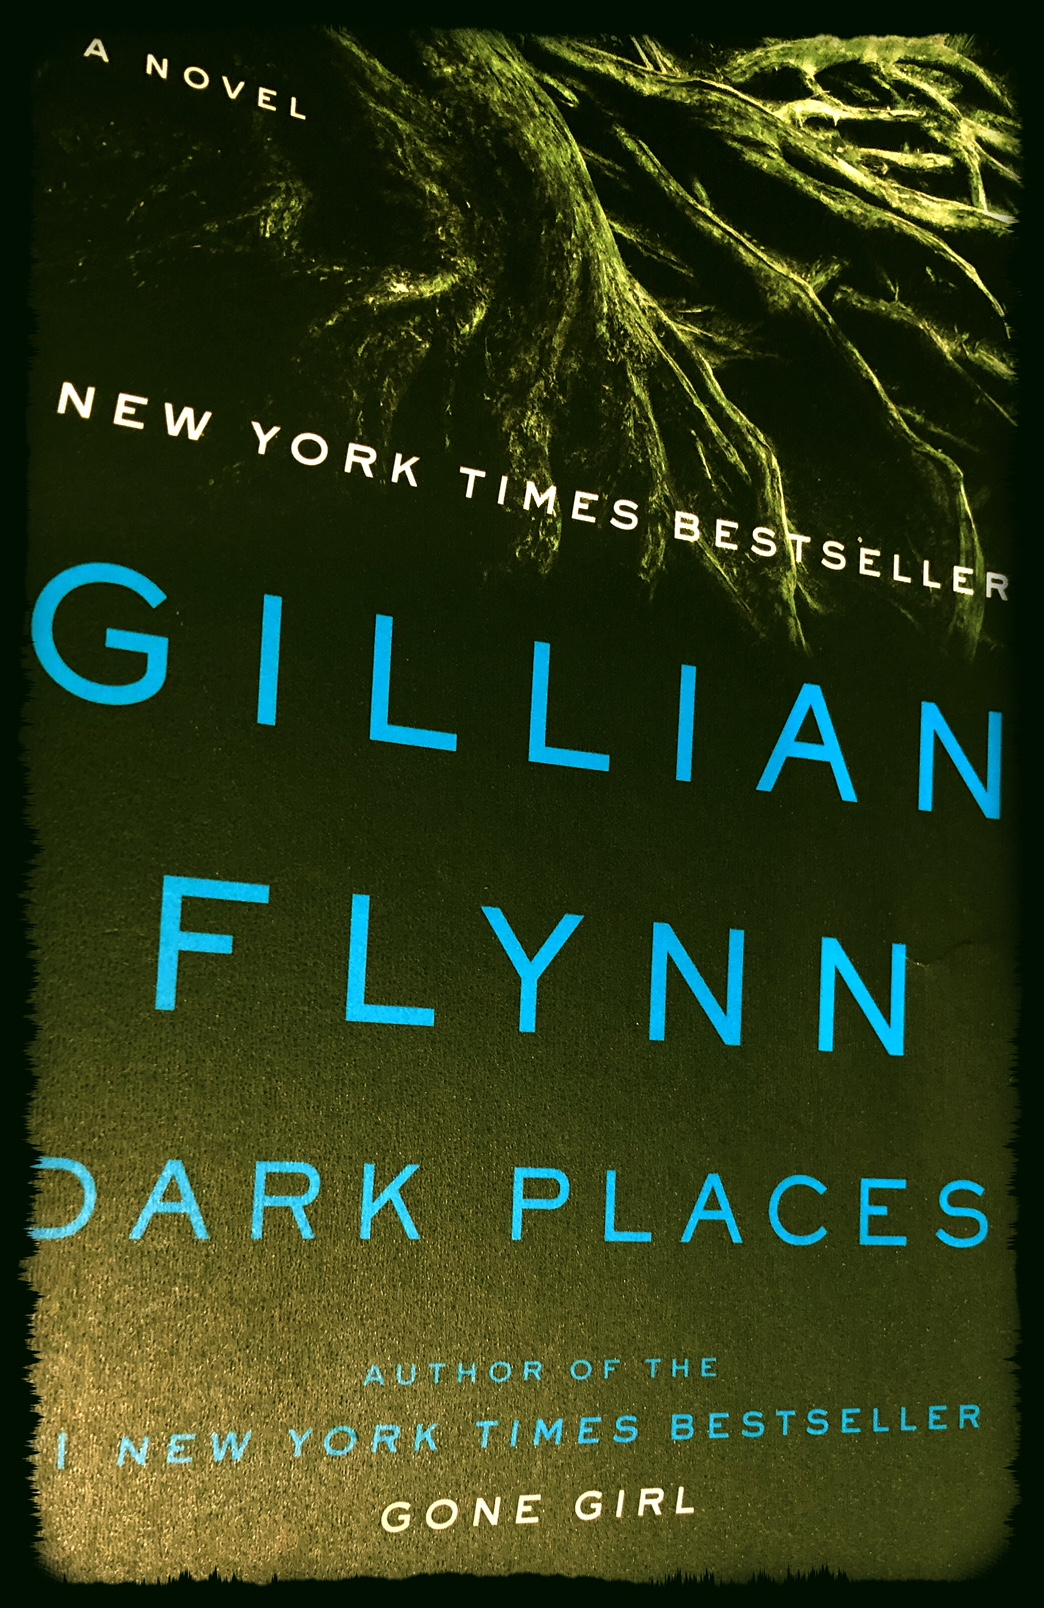 The Nitty Gritty: A Remotely Intellectual Review of Dark Places (by GillianFlynn)